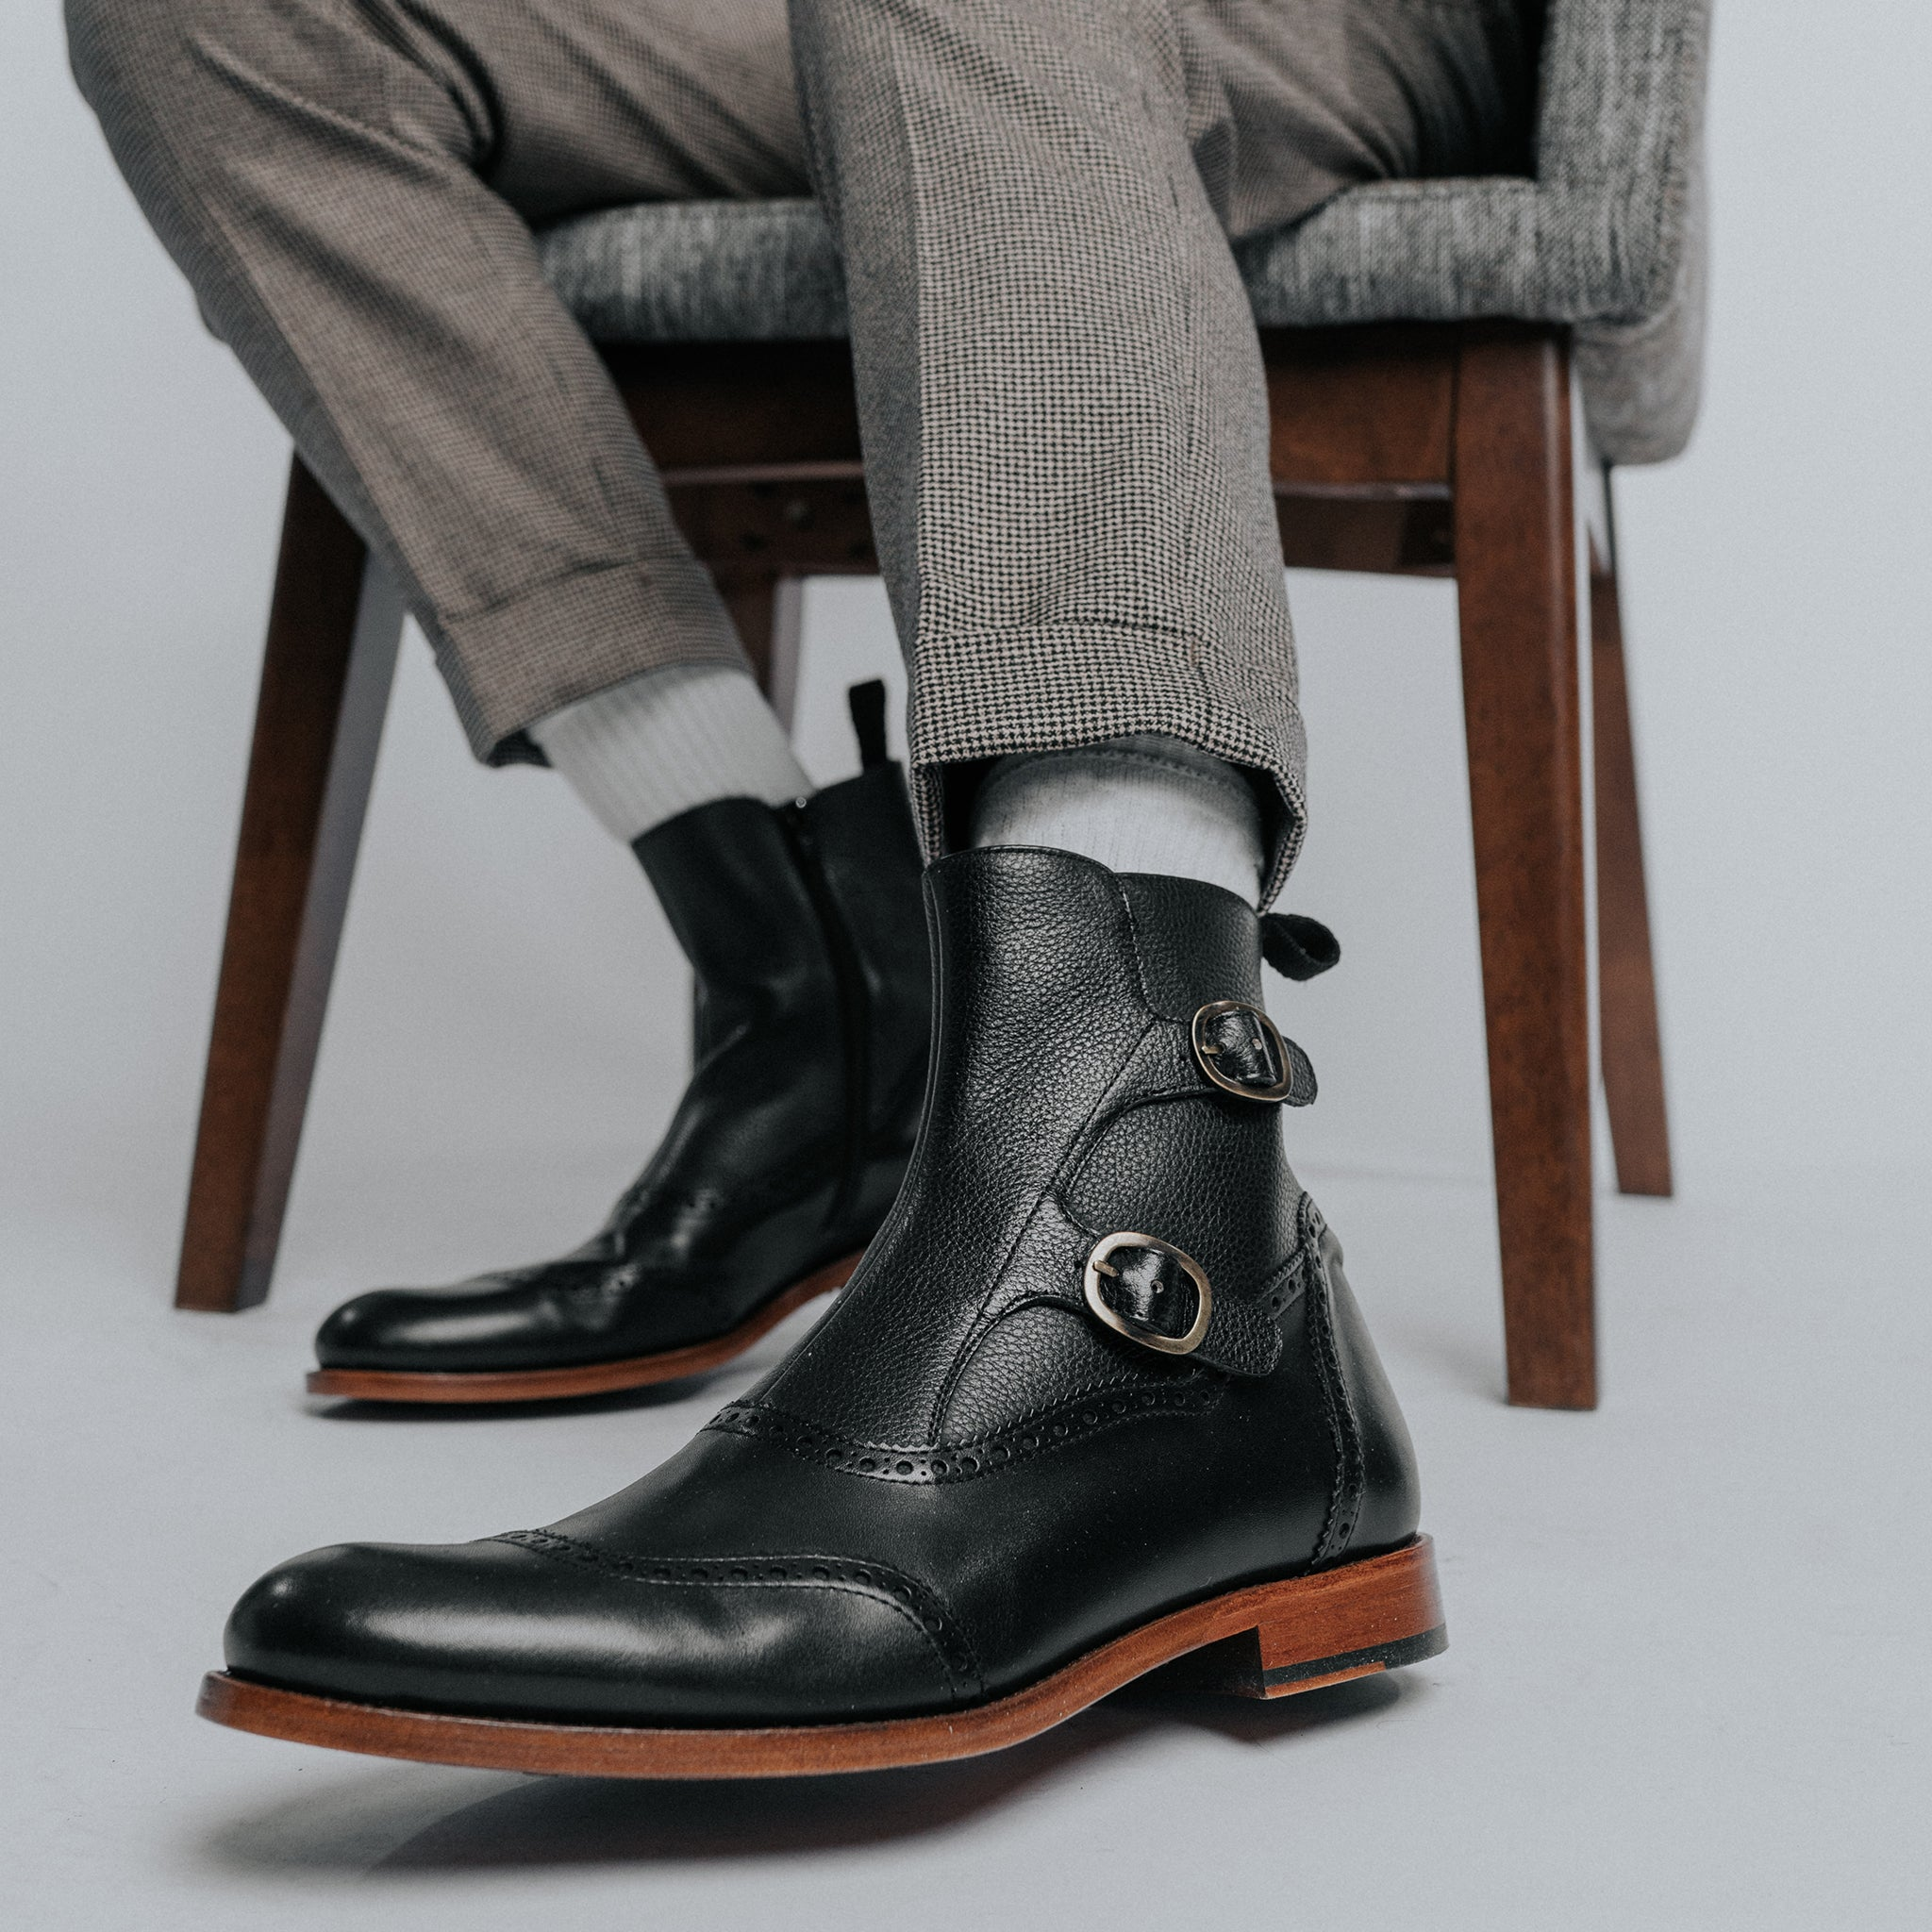 The Dustin Boot in Black on model sitting in a wooden chair wearing white socks and checkered pants